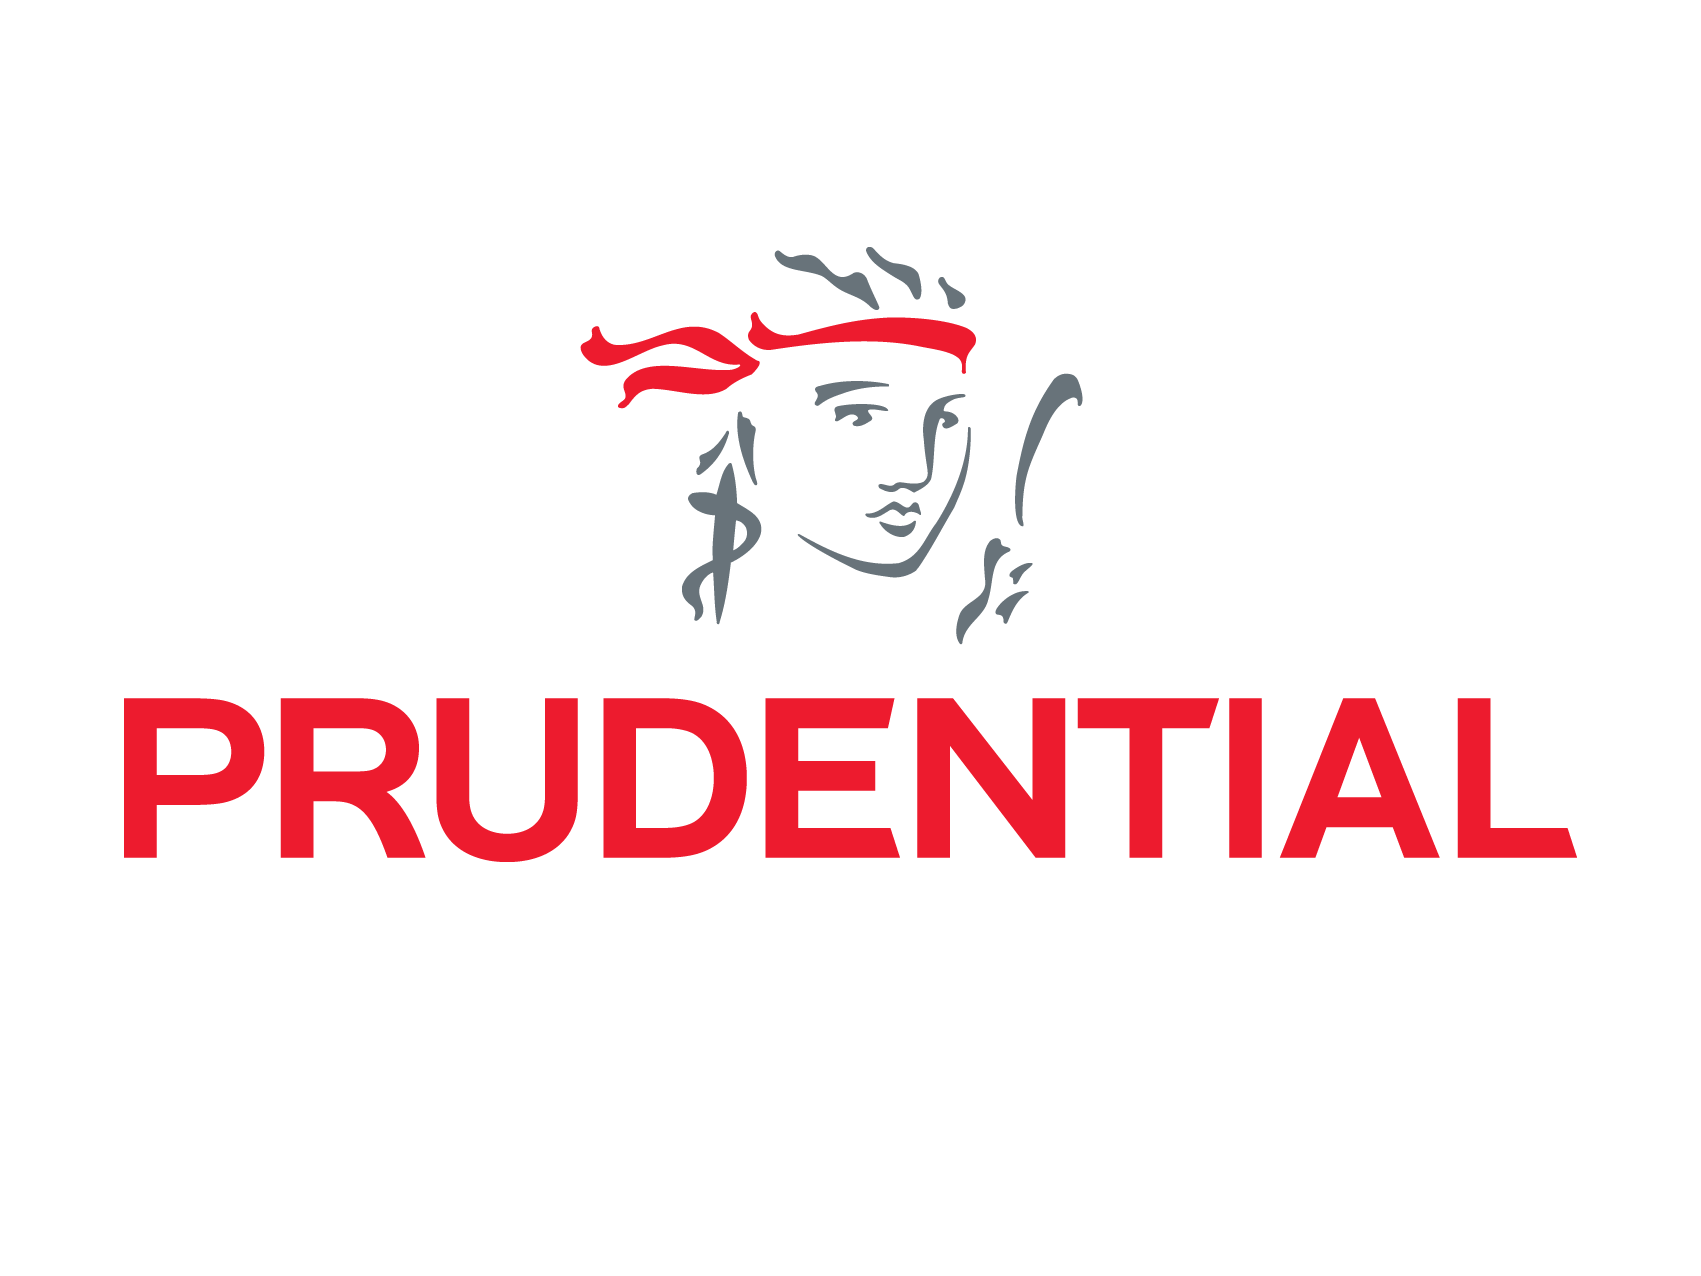 Prudential_UK